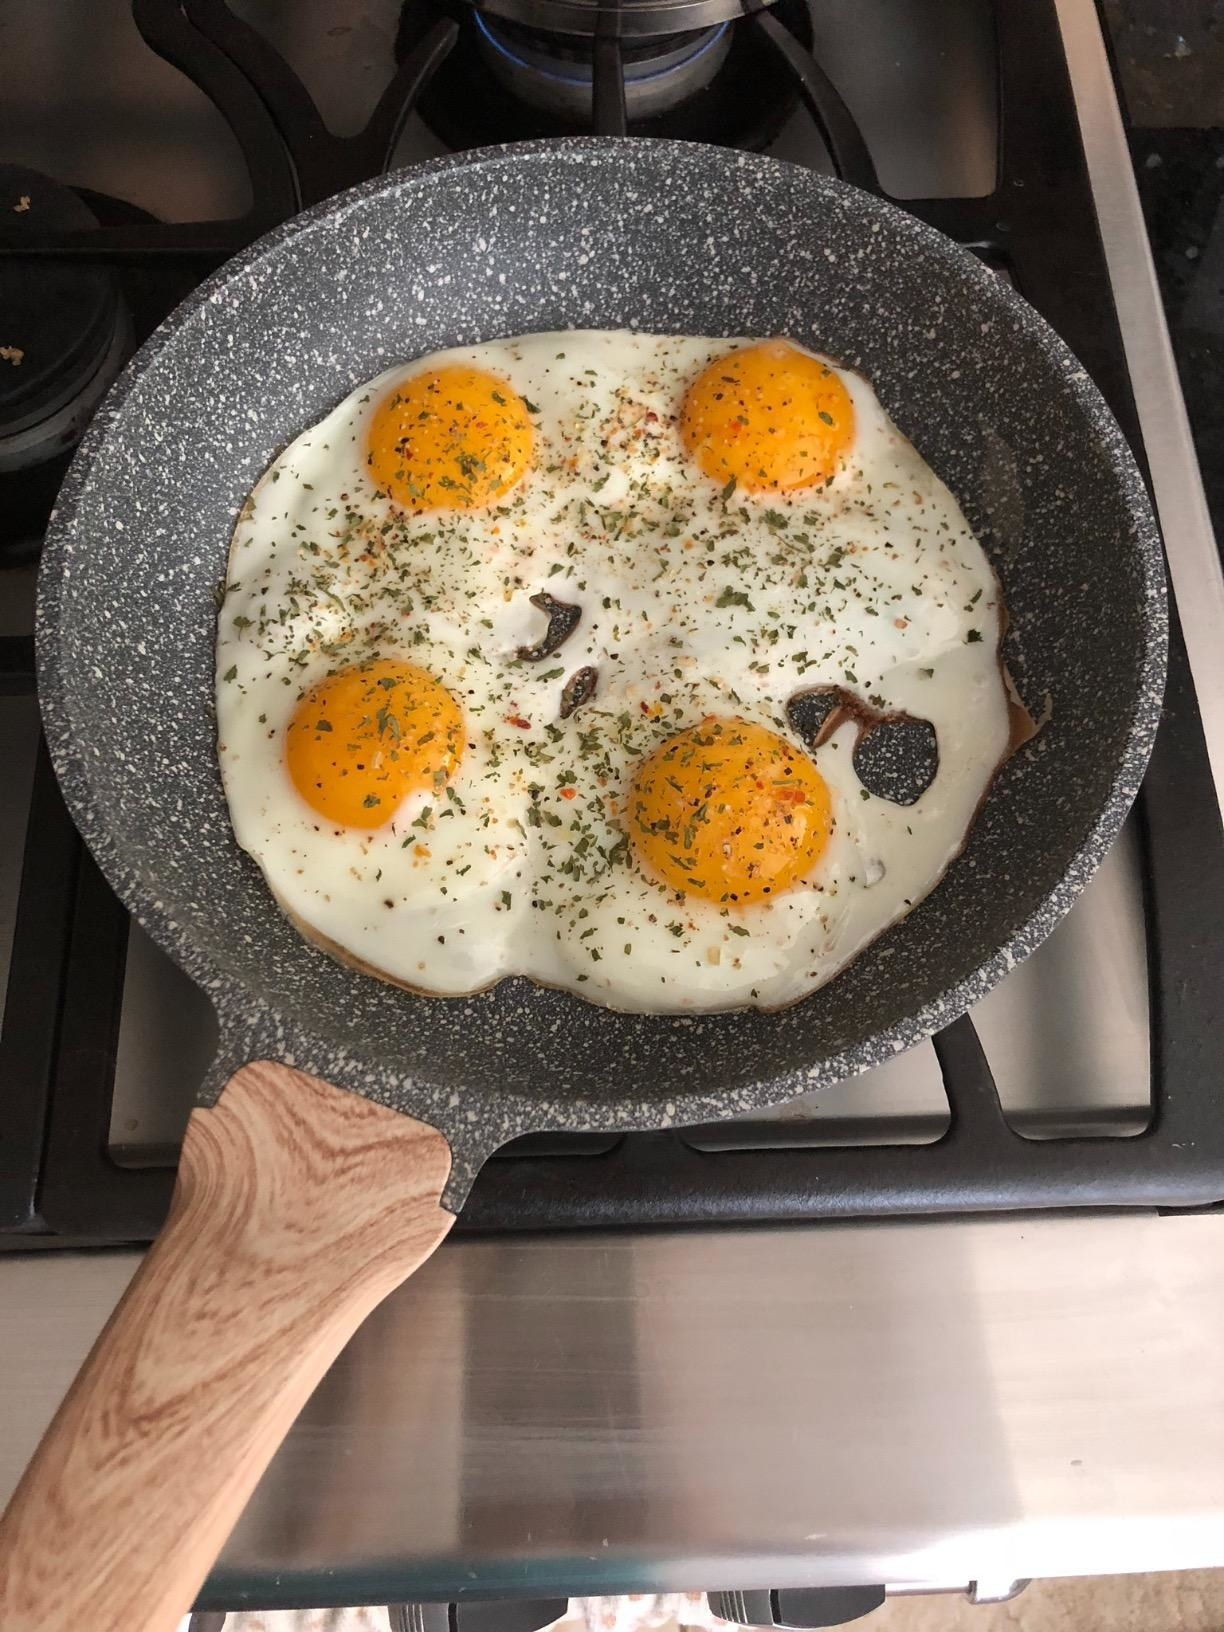 the pan with eggs and seasoning